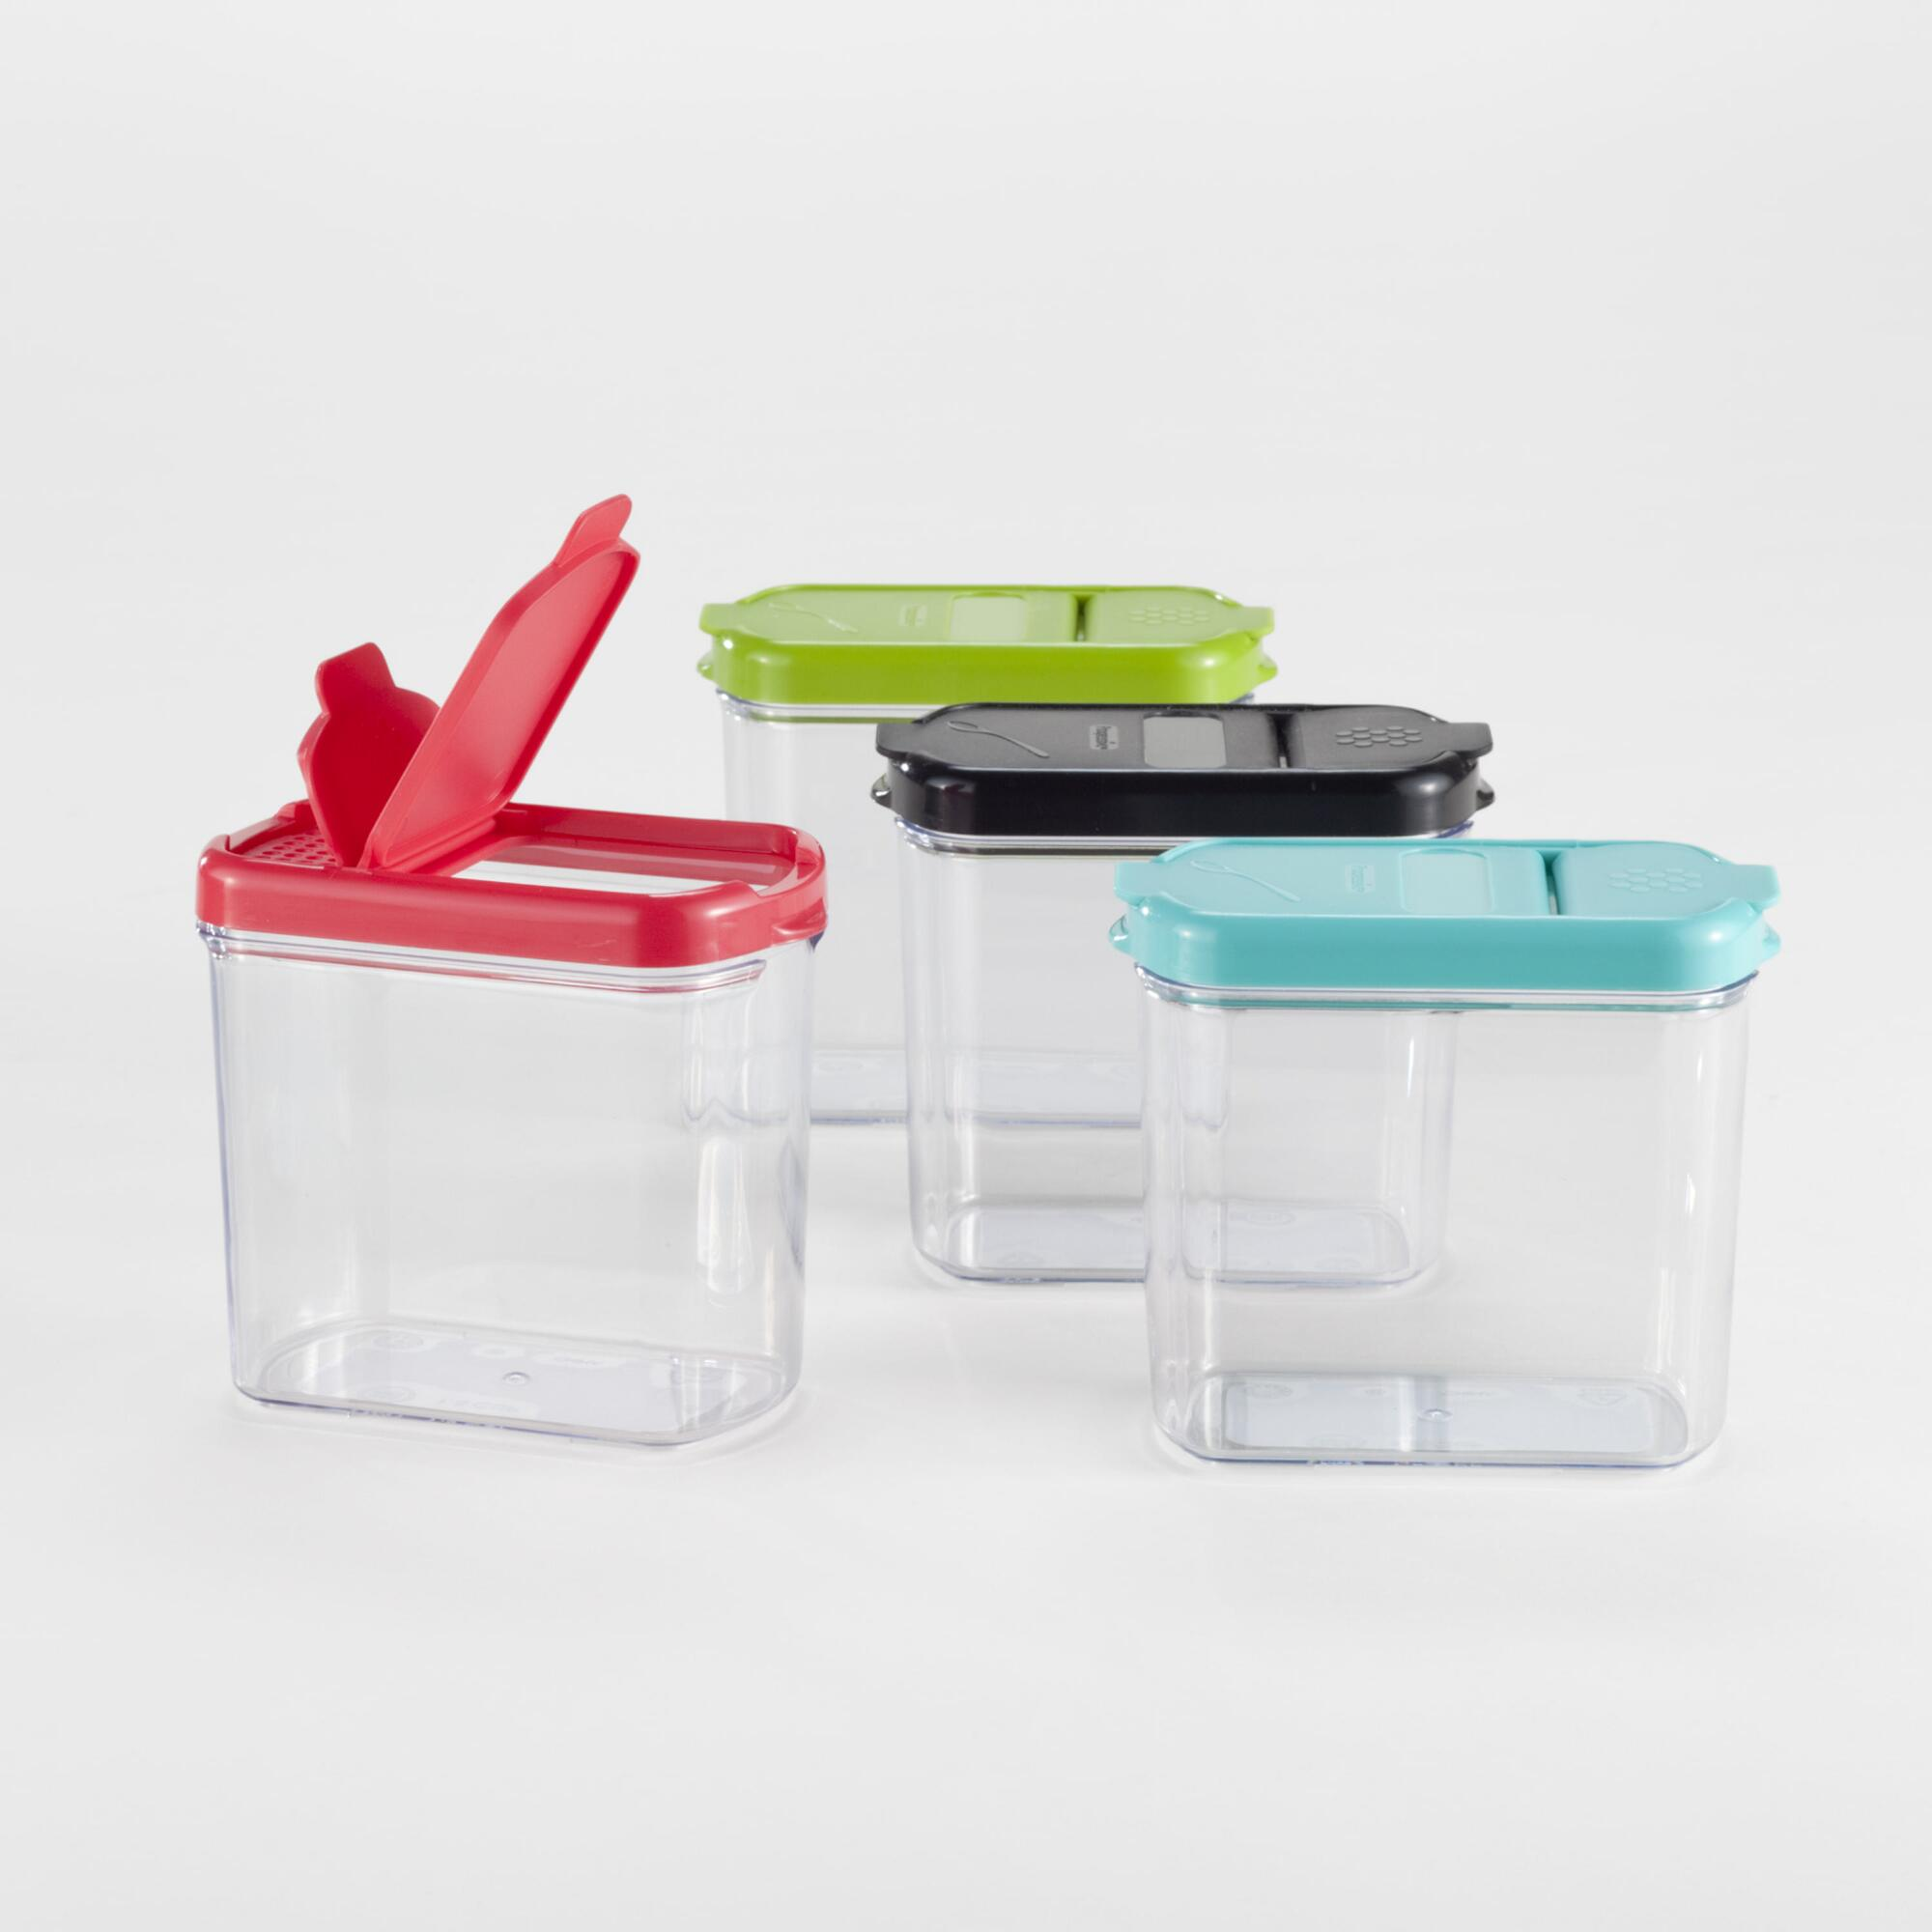 plastic mini keepers storage containers